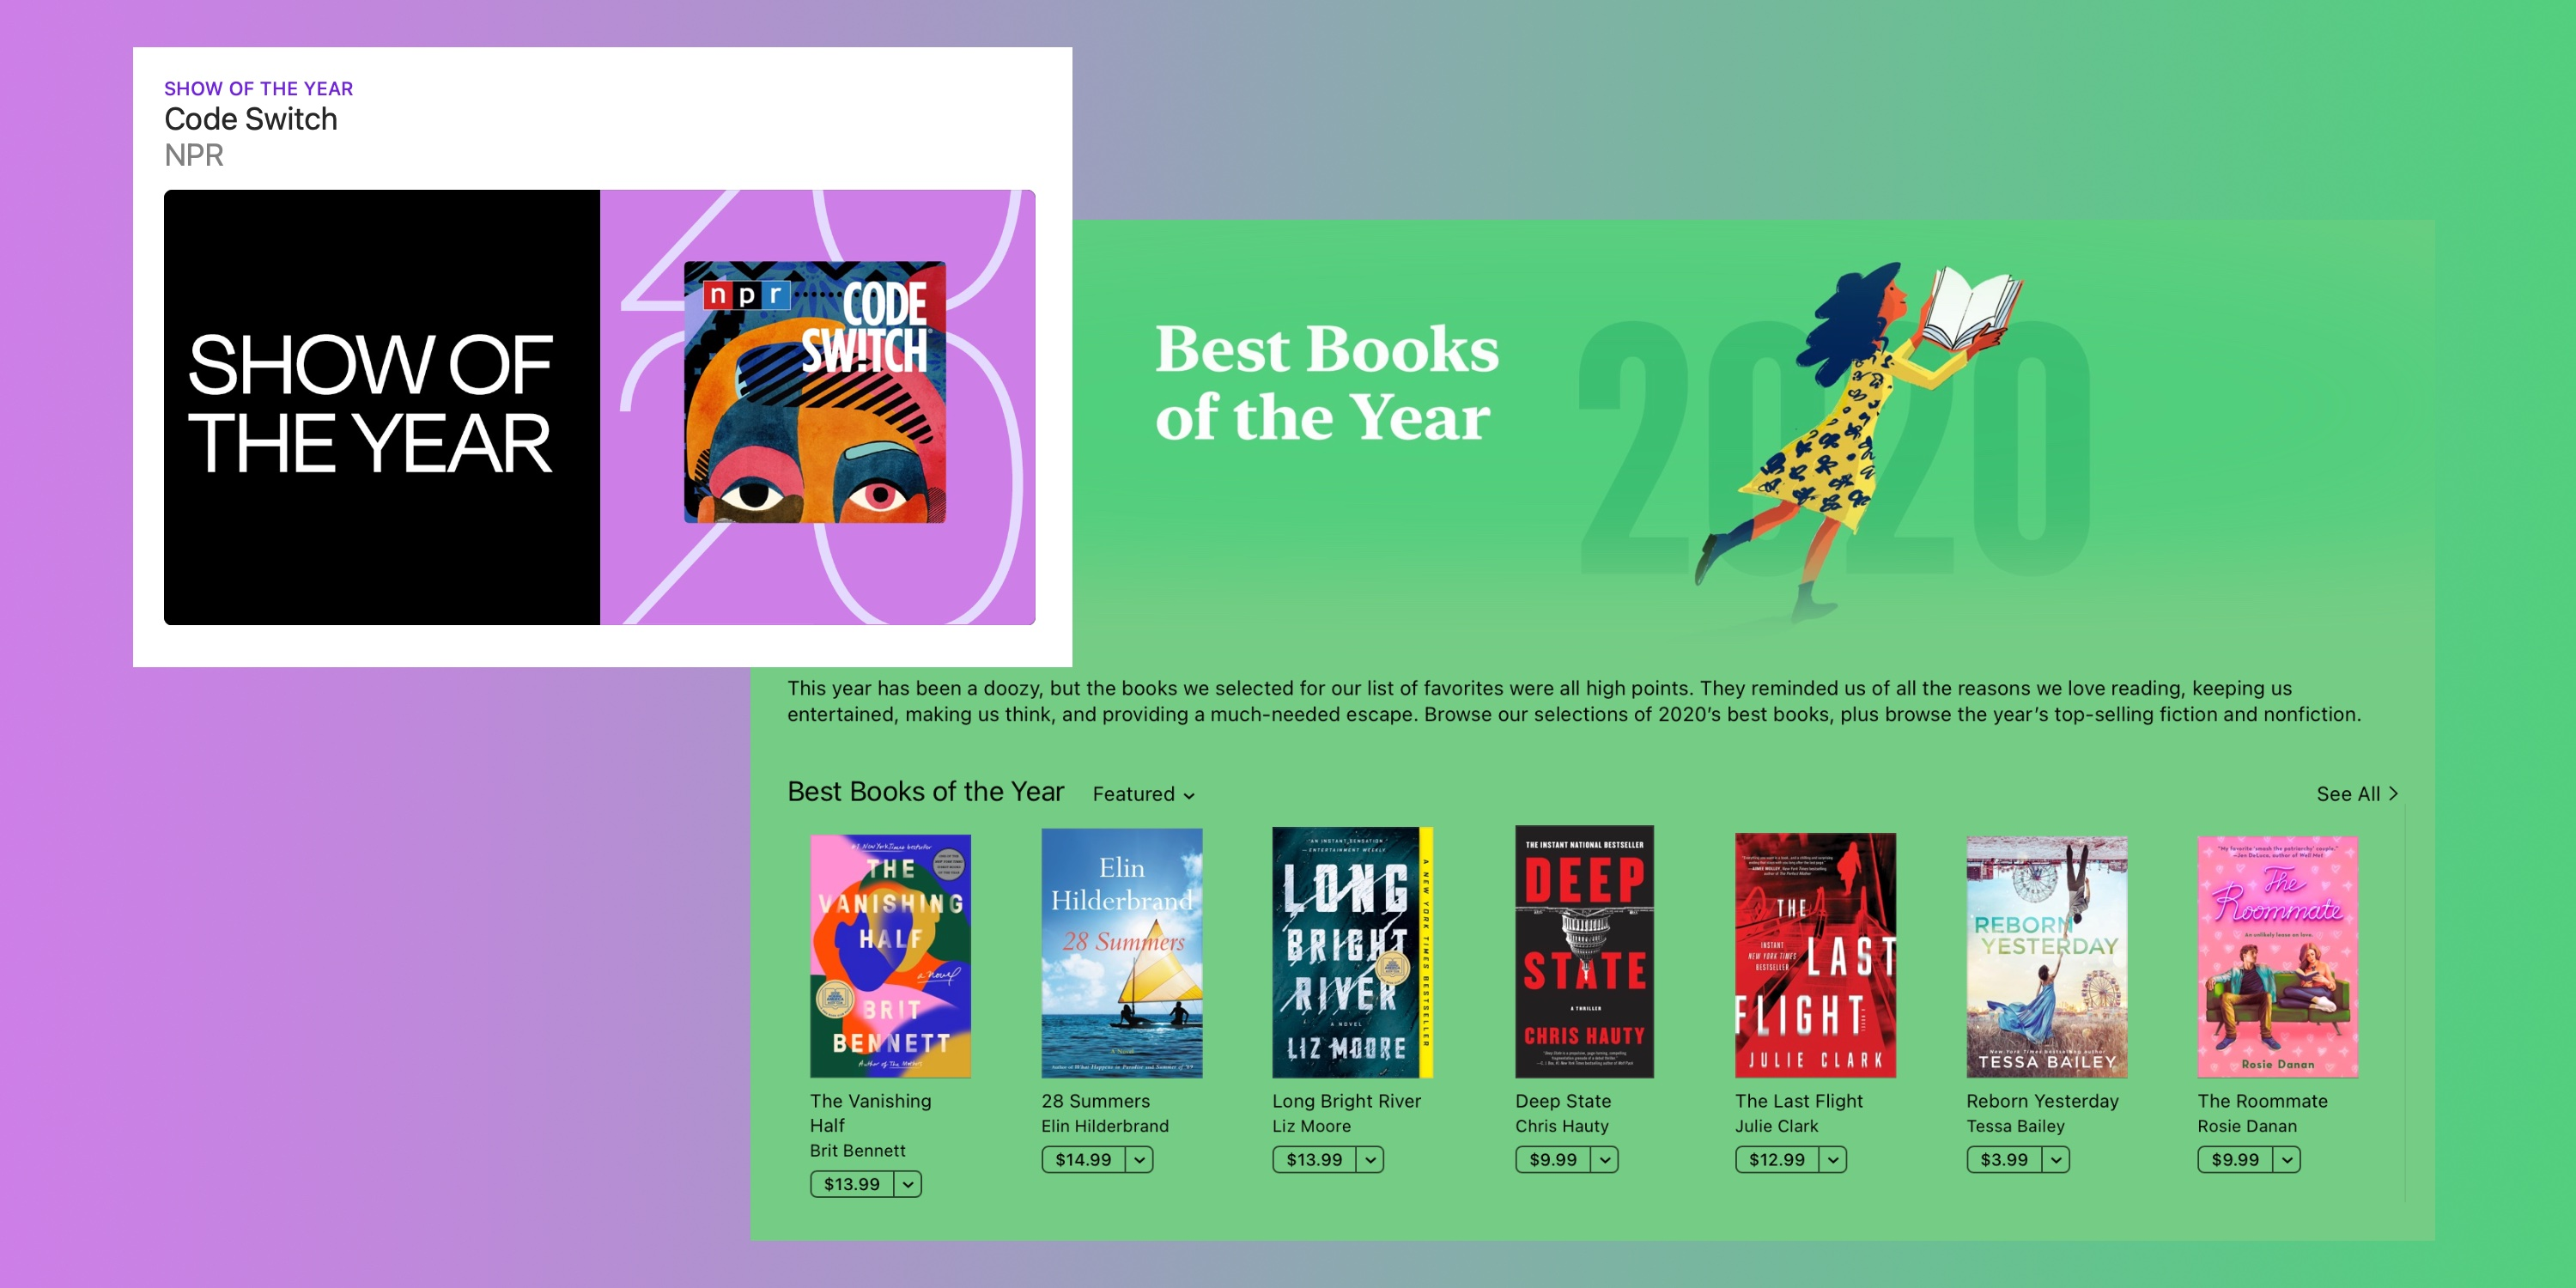 photo of Apple reveals most popular books, podcasts of the year including first-ever show of the year image